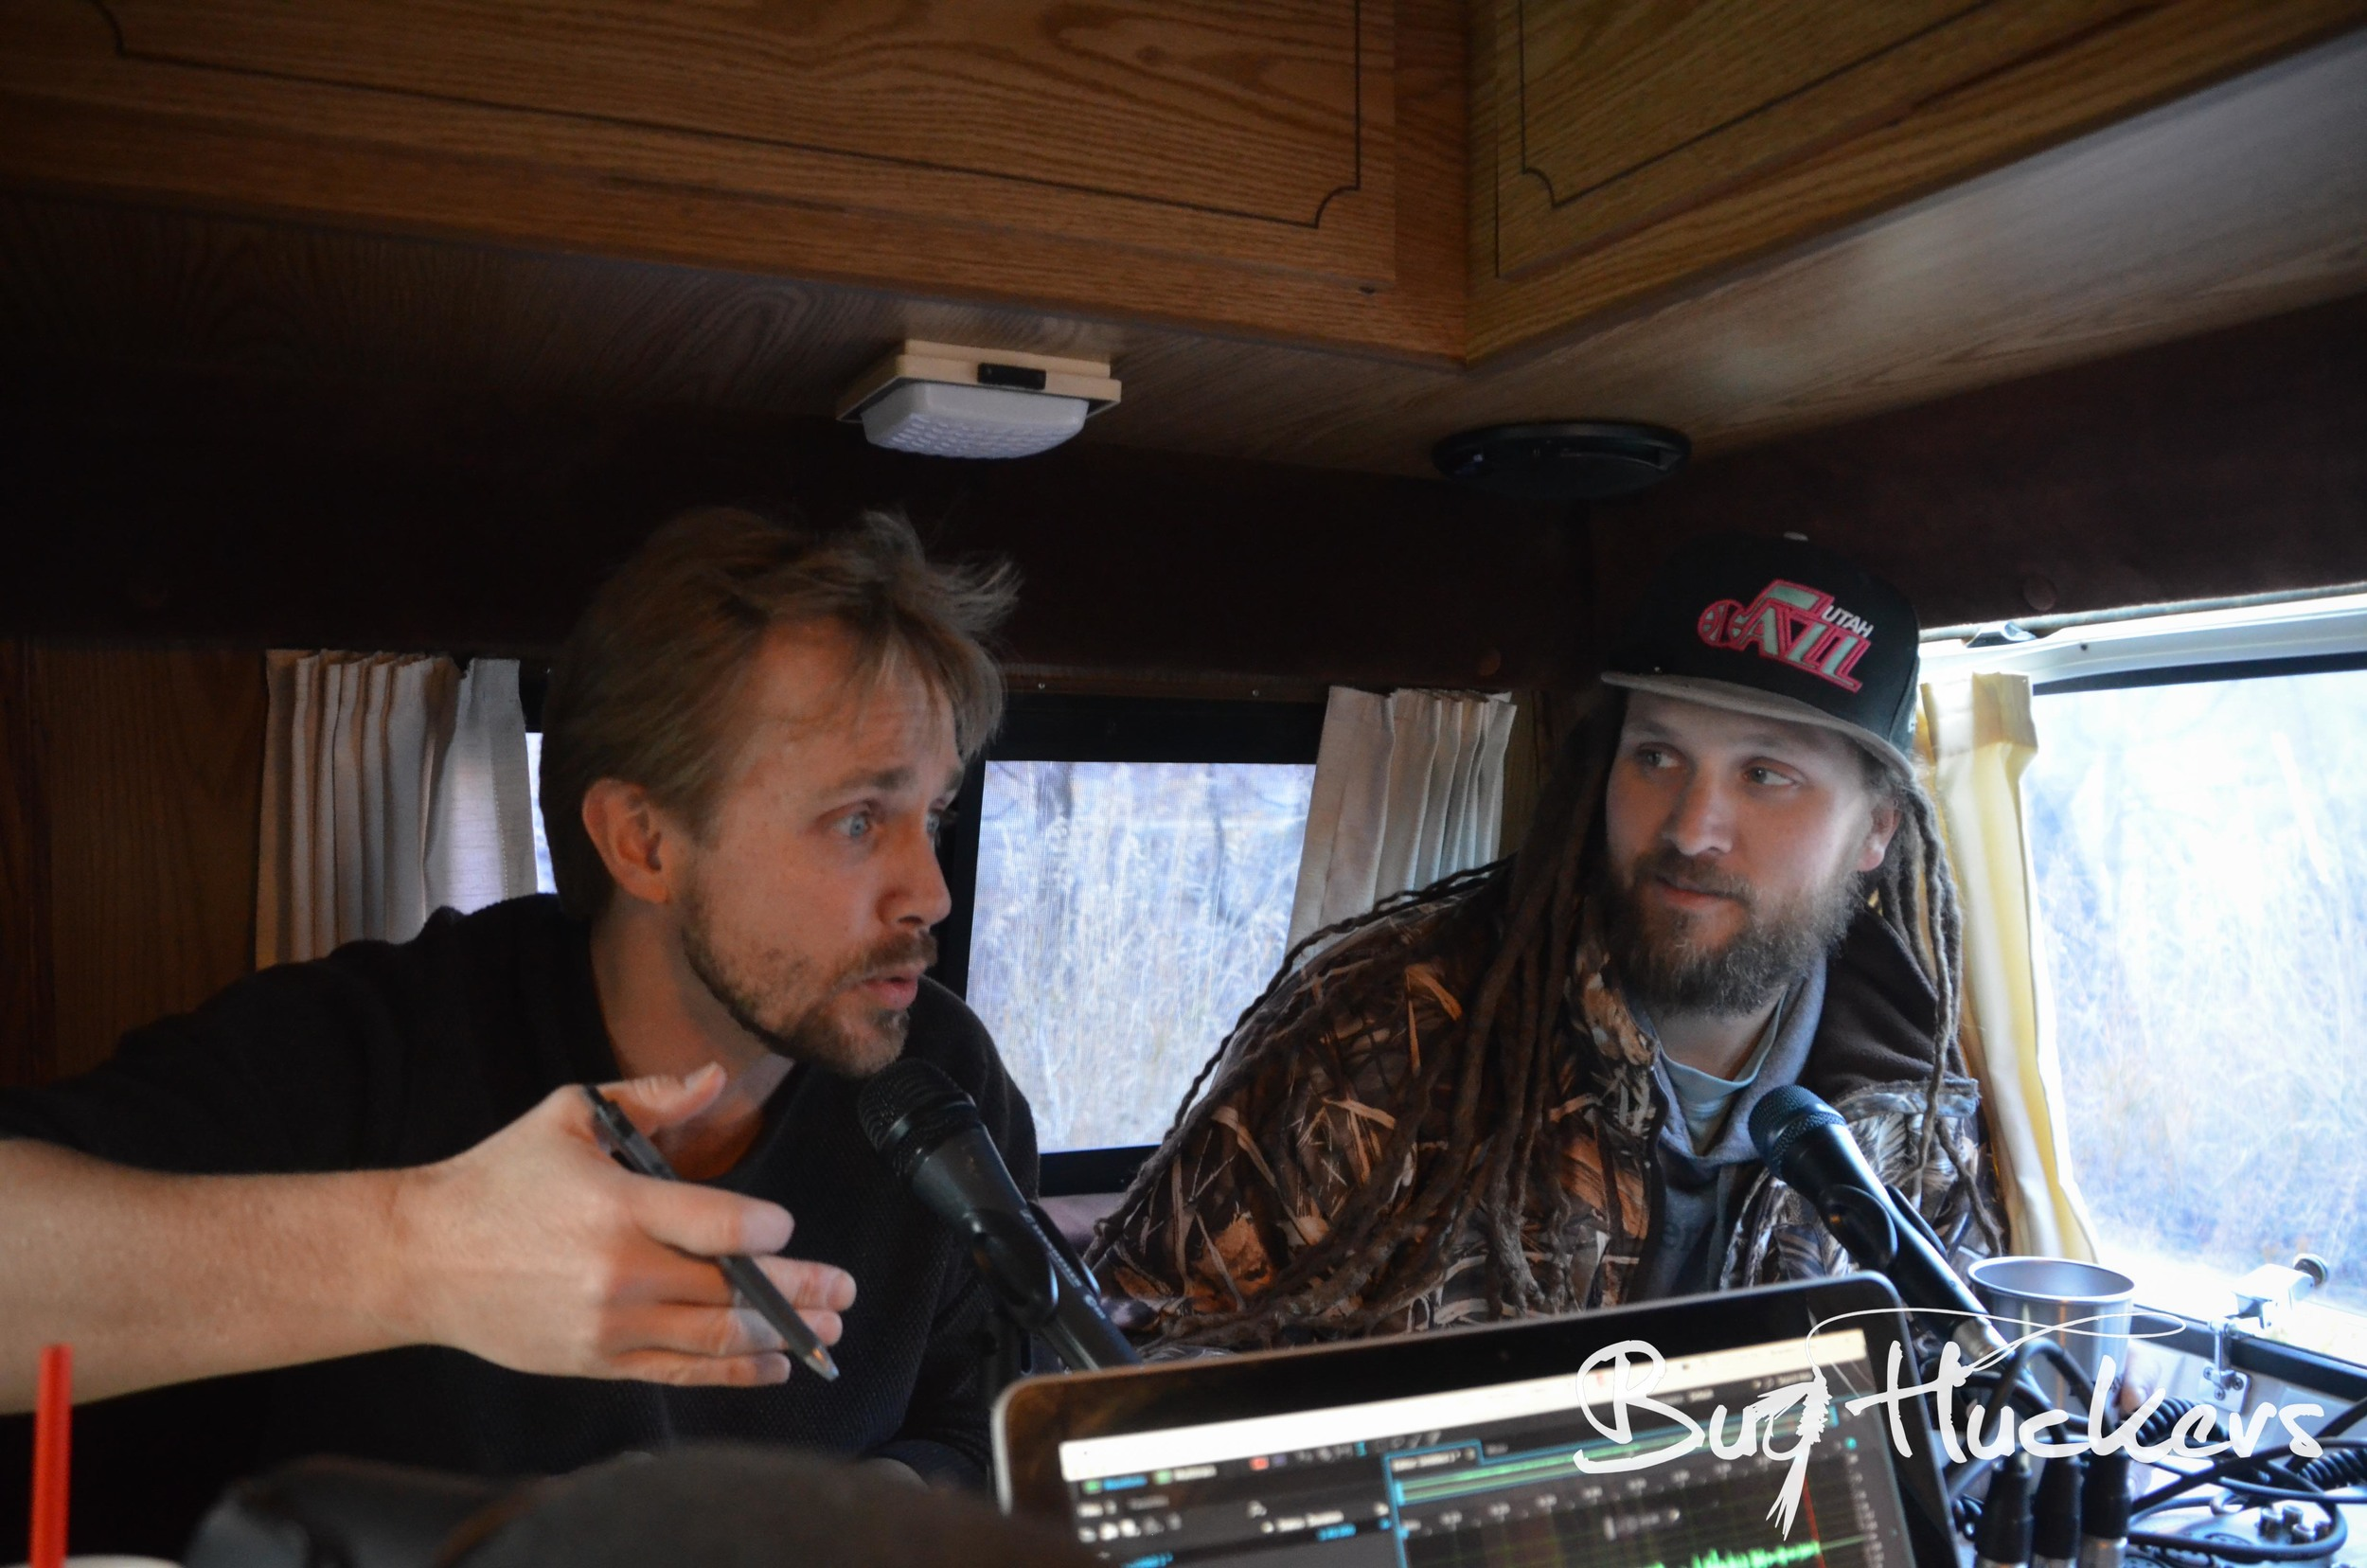 Bug Huckers Hosts London & Danny Podcasting from the Tan Van on the Ogden River.